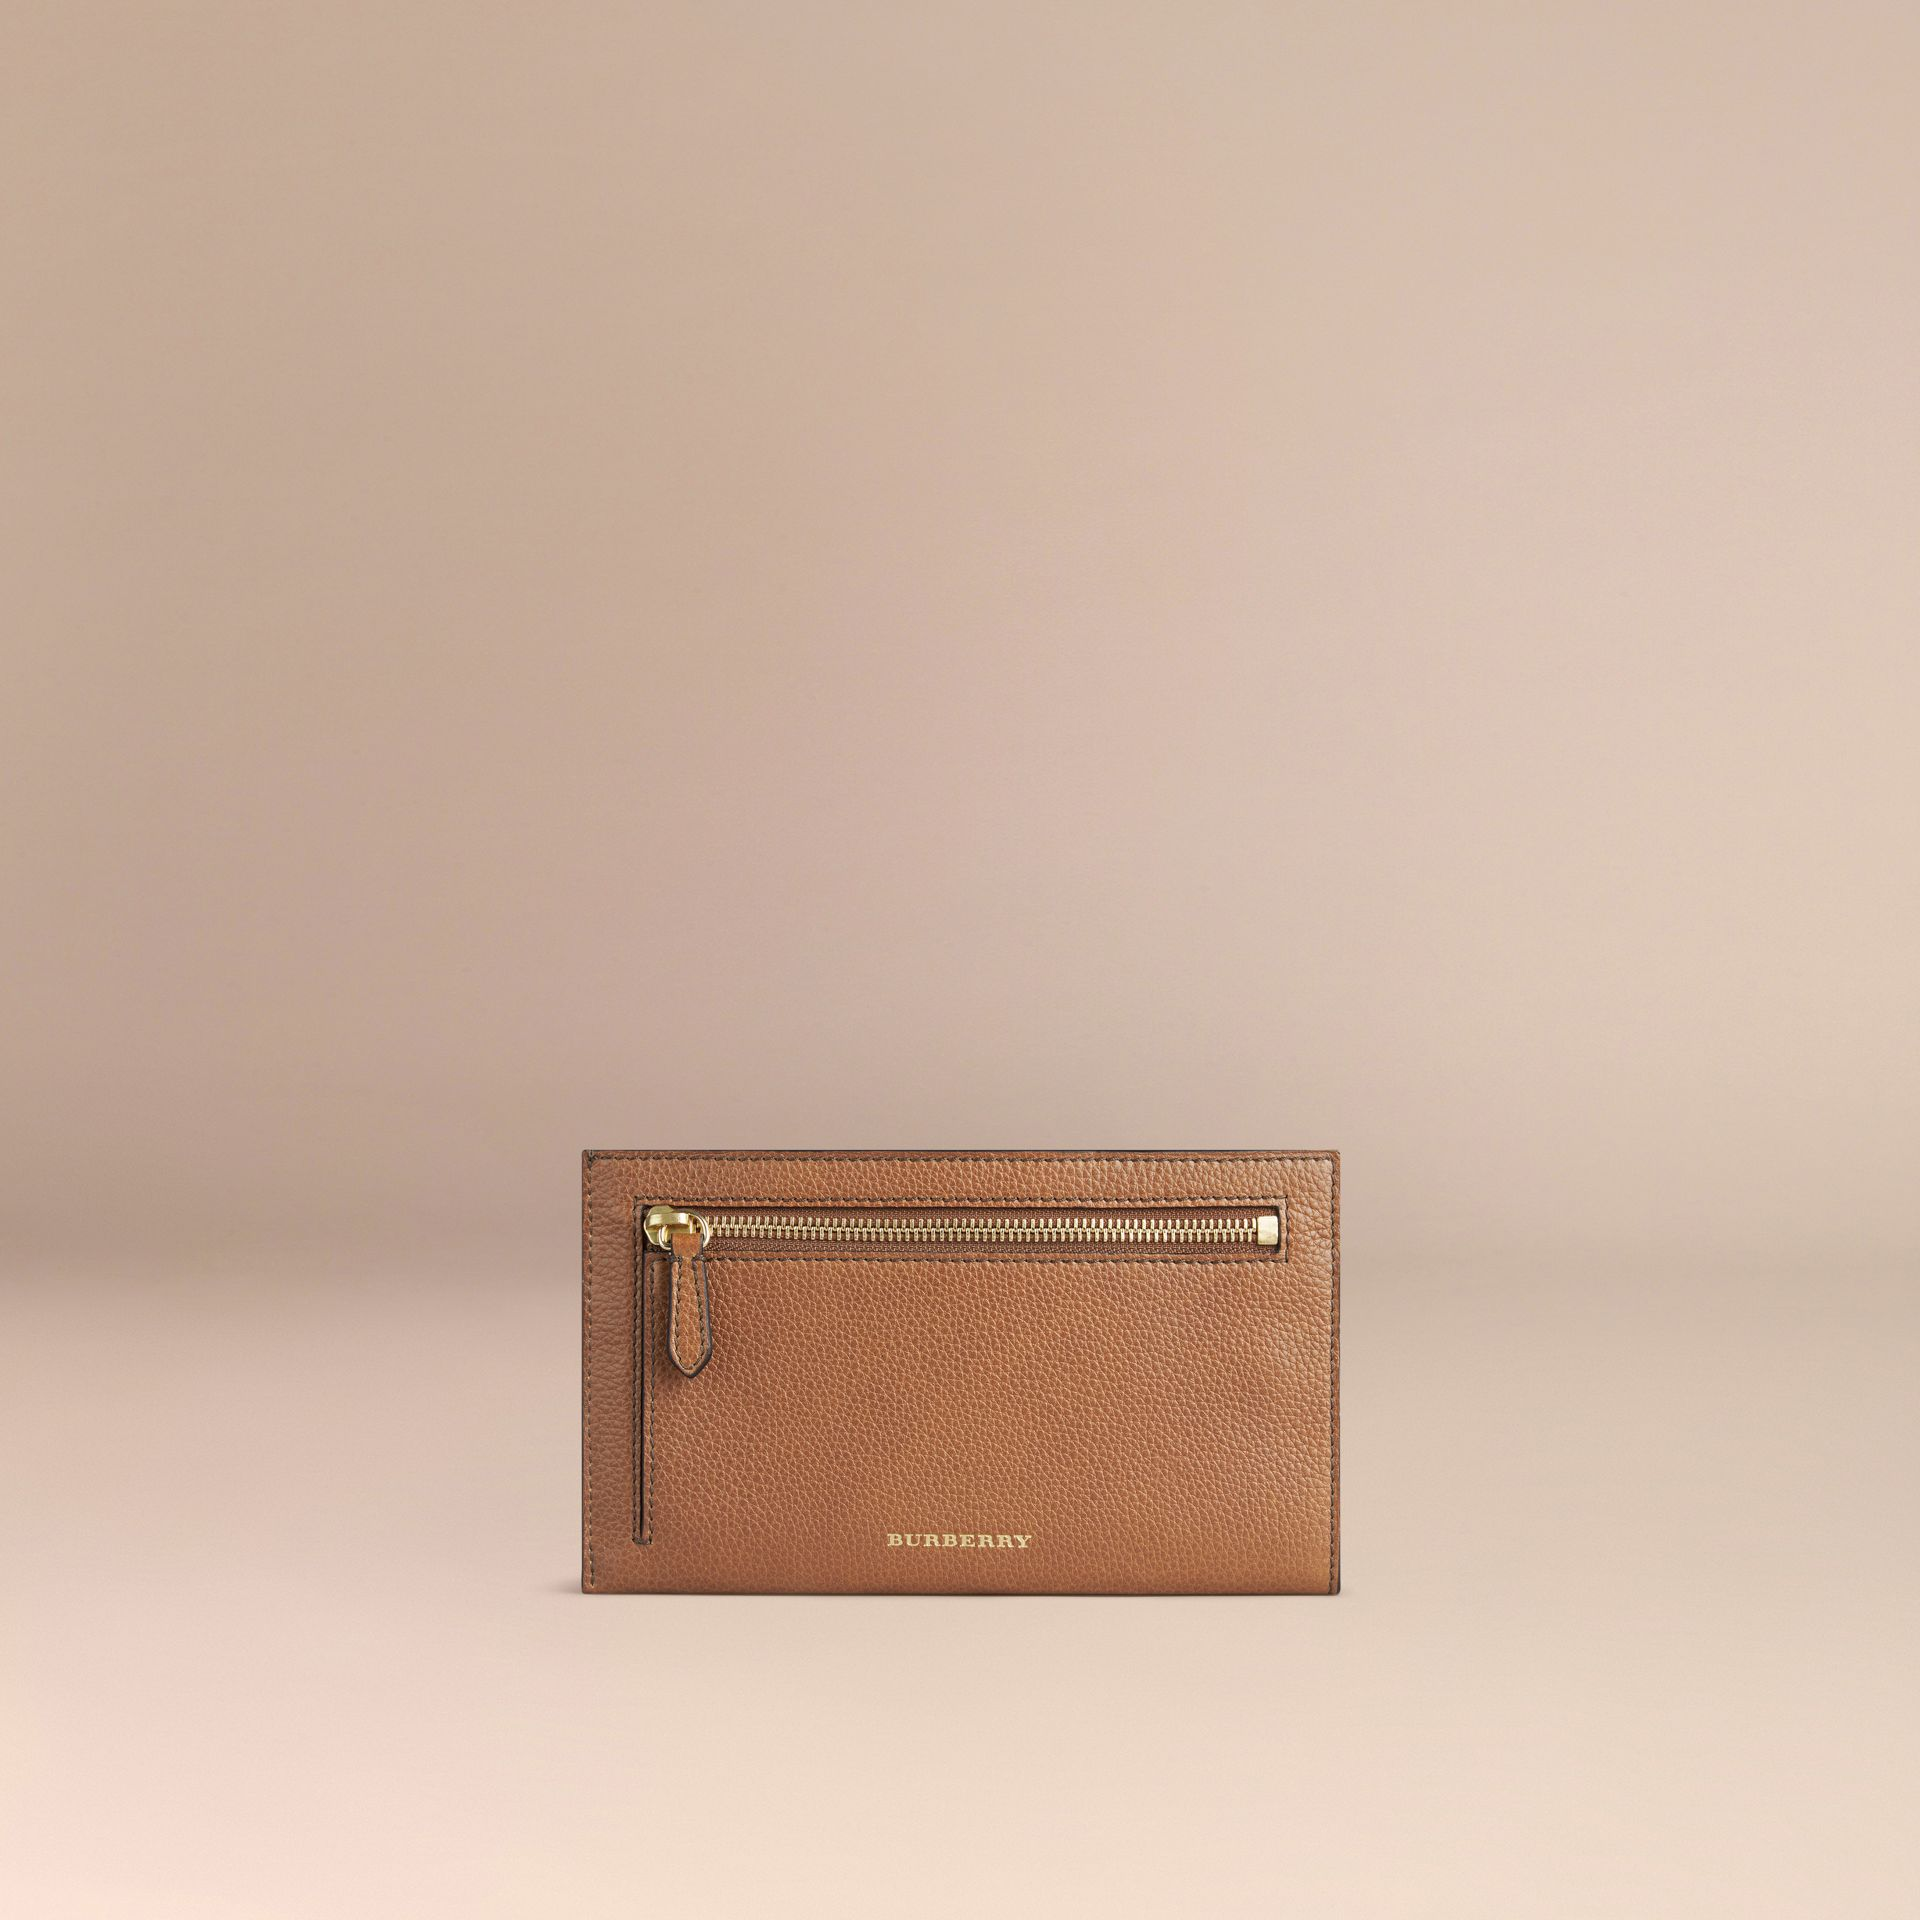 Grainy Leather Travel Case in Tan - gallery image 2